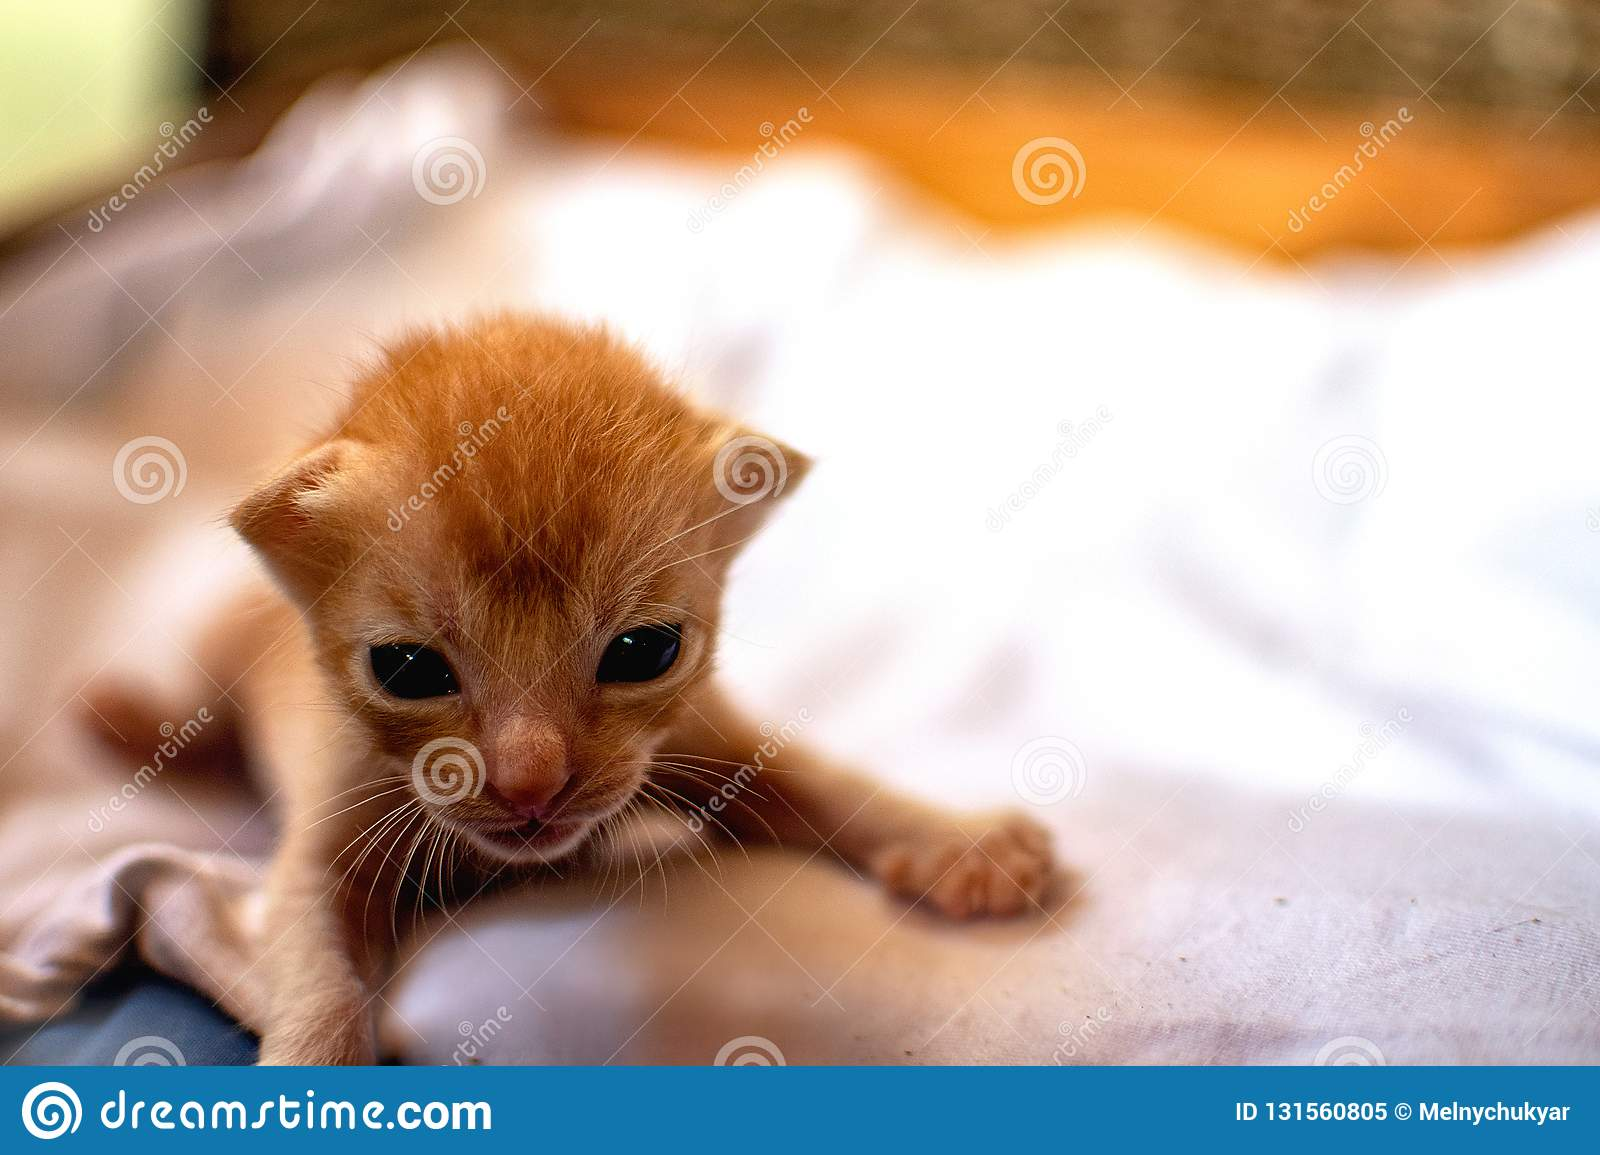 Newborn Red Kitten New Born Baby Cat Cute Baby Cat Close Photo